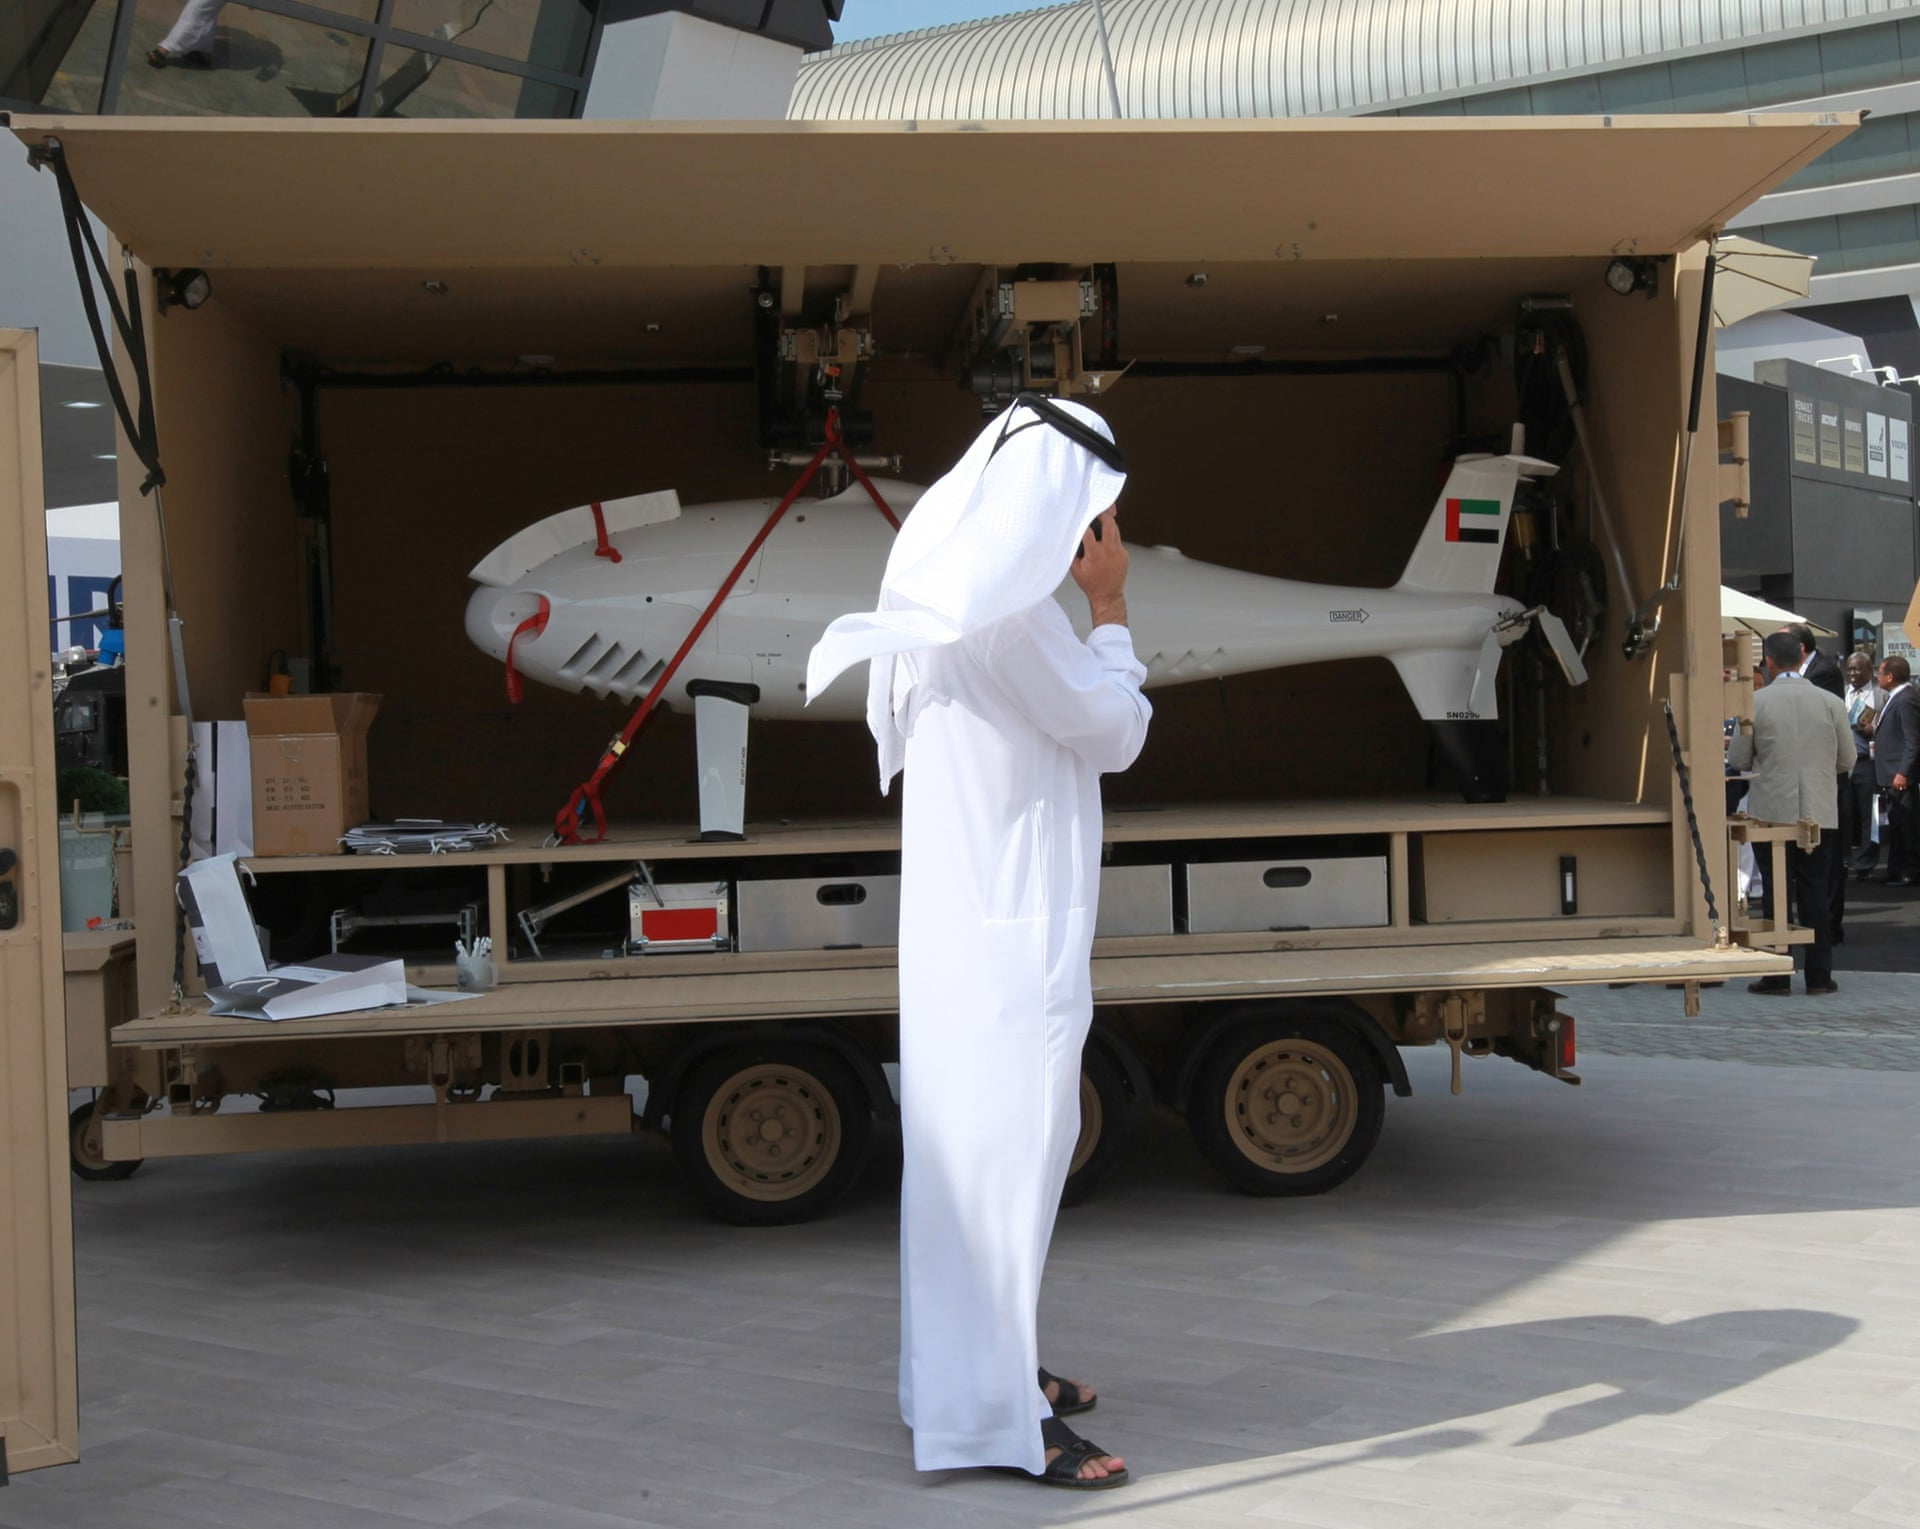 An Al Sabr unmanned aerial vehicle at the Idex arms fair in Abu Dhabi